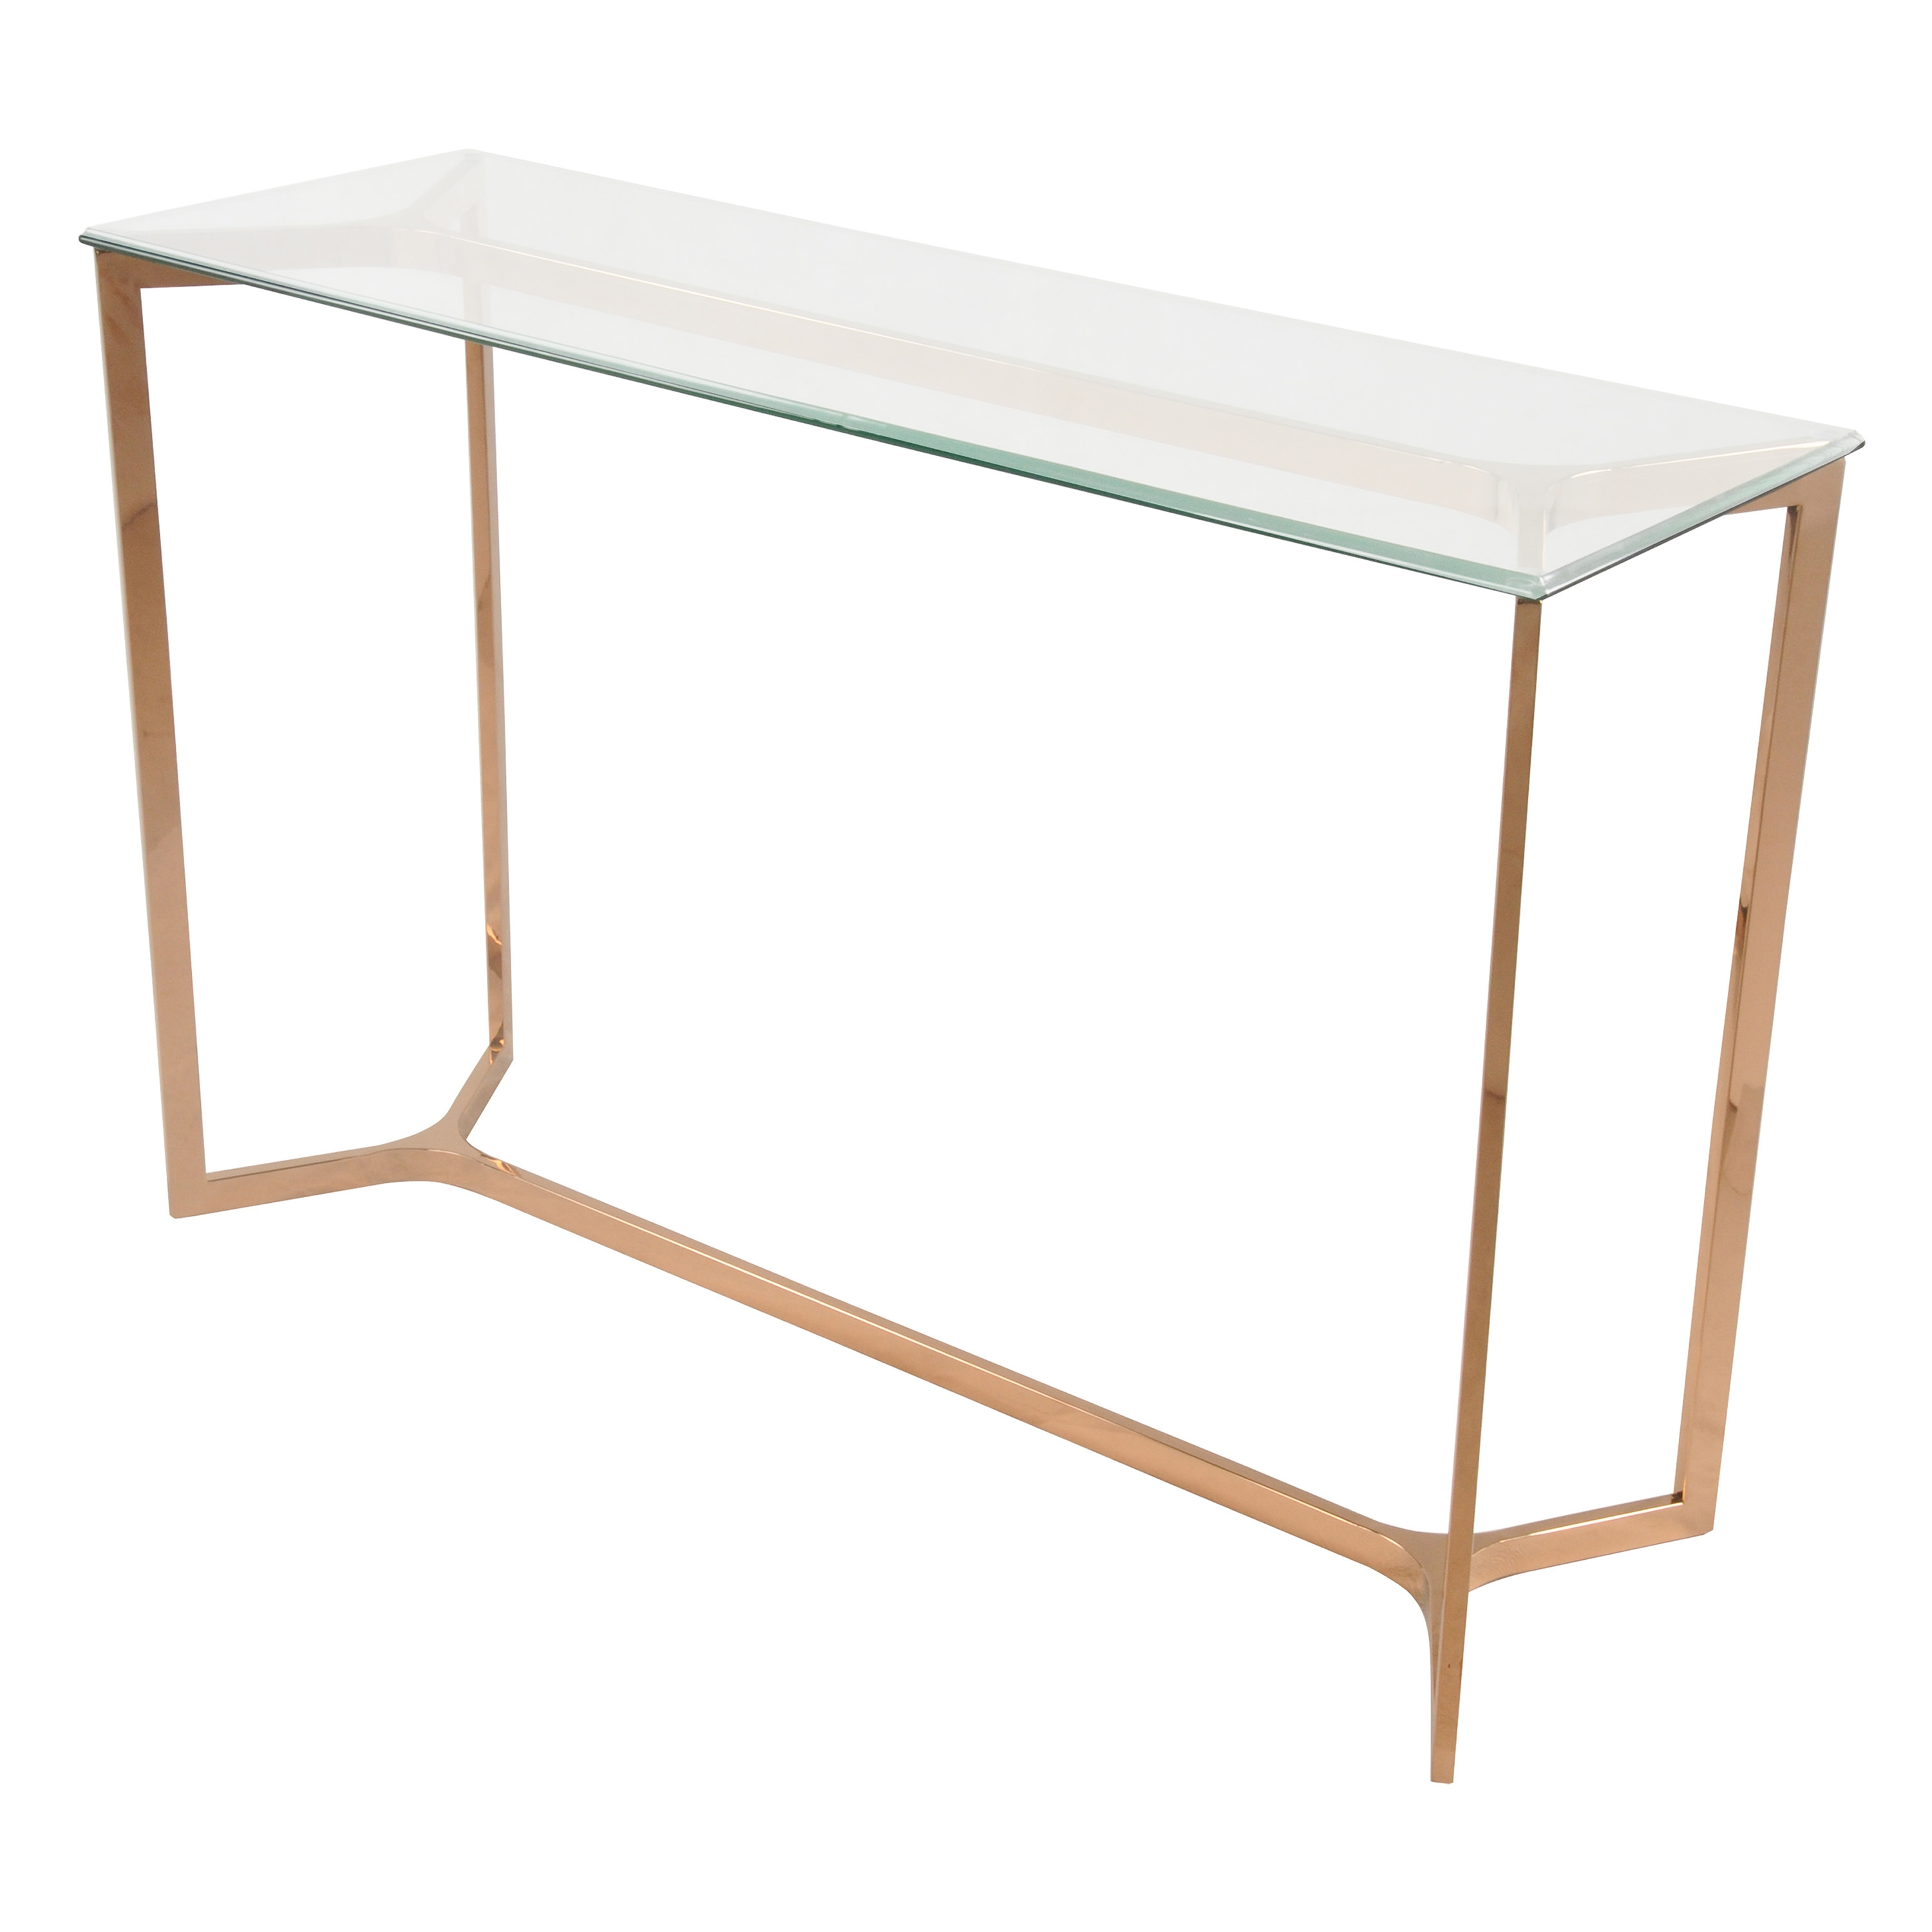 Monza Console Table Glass Top, Rose Gold/6000008 RG